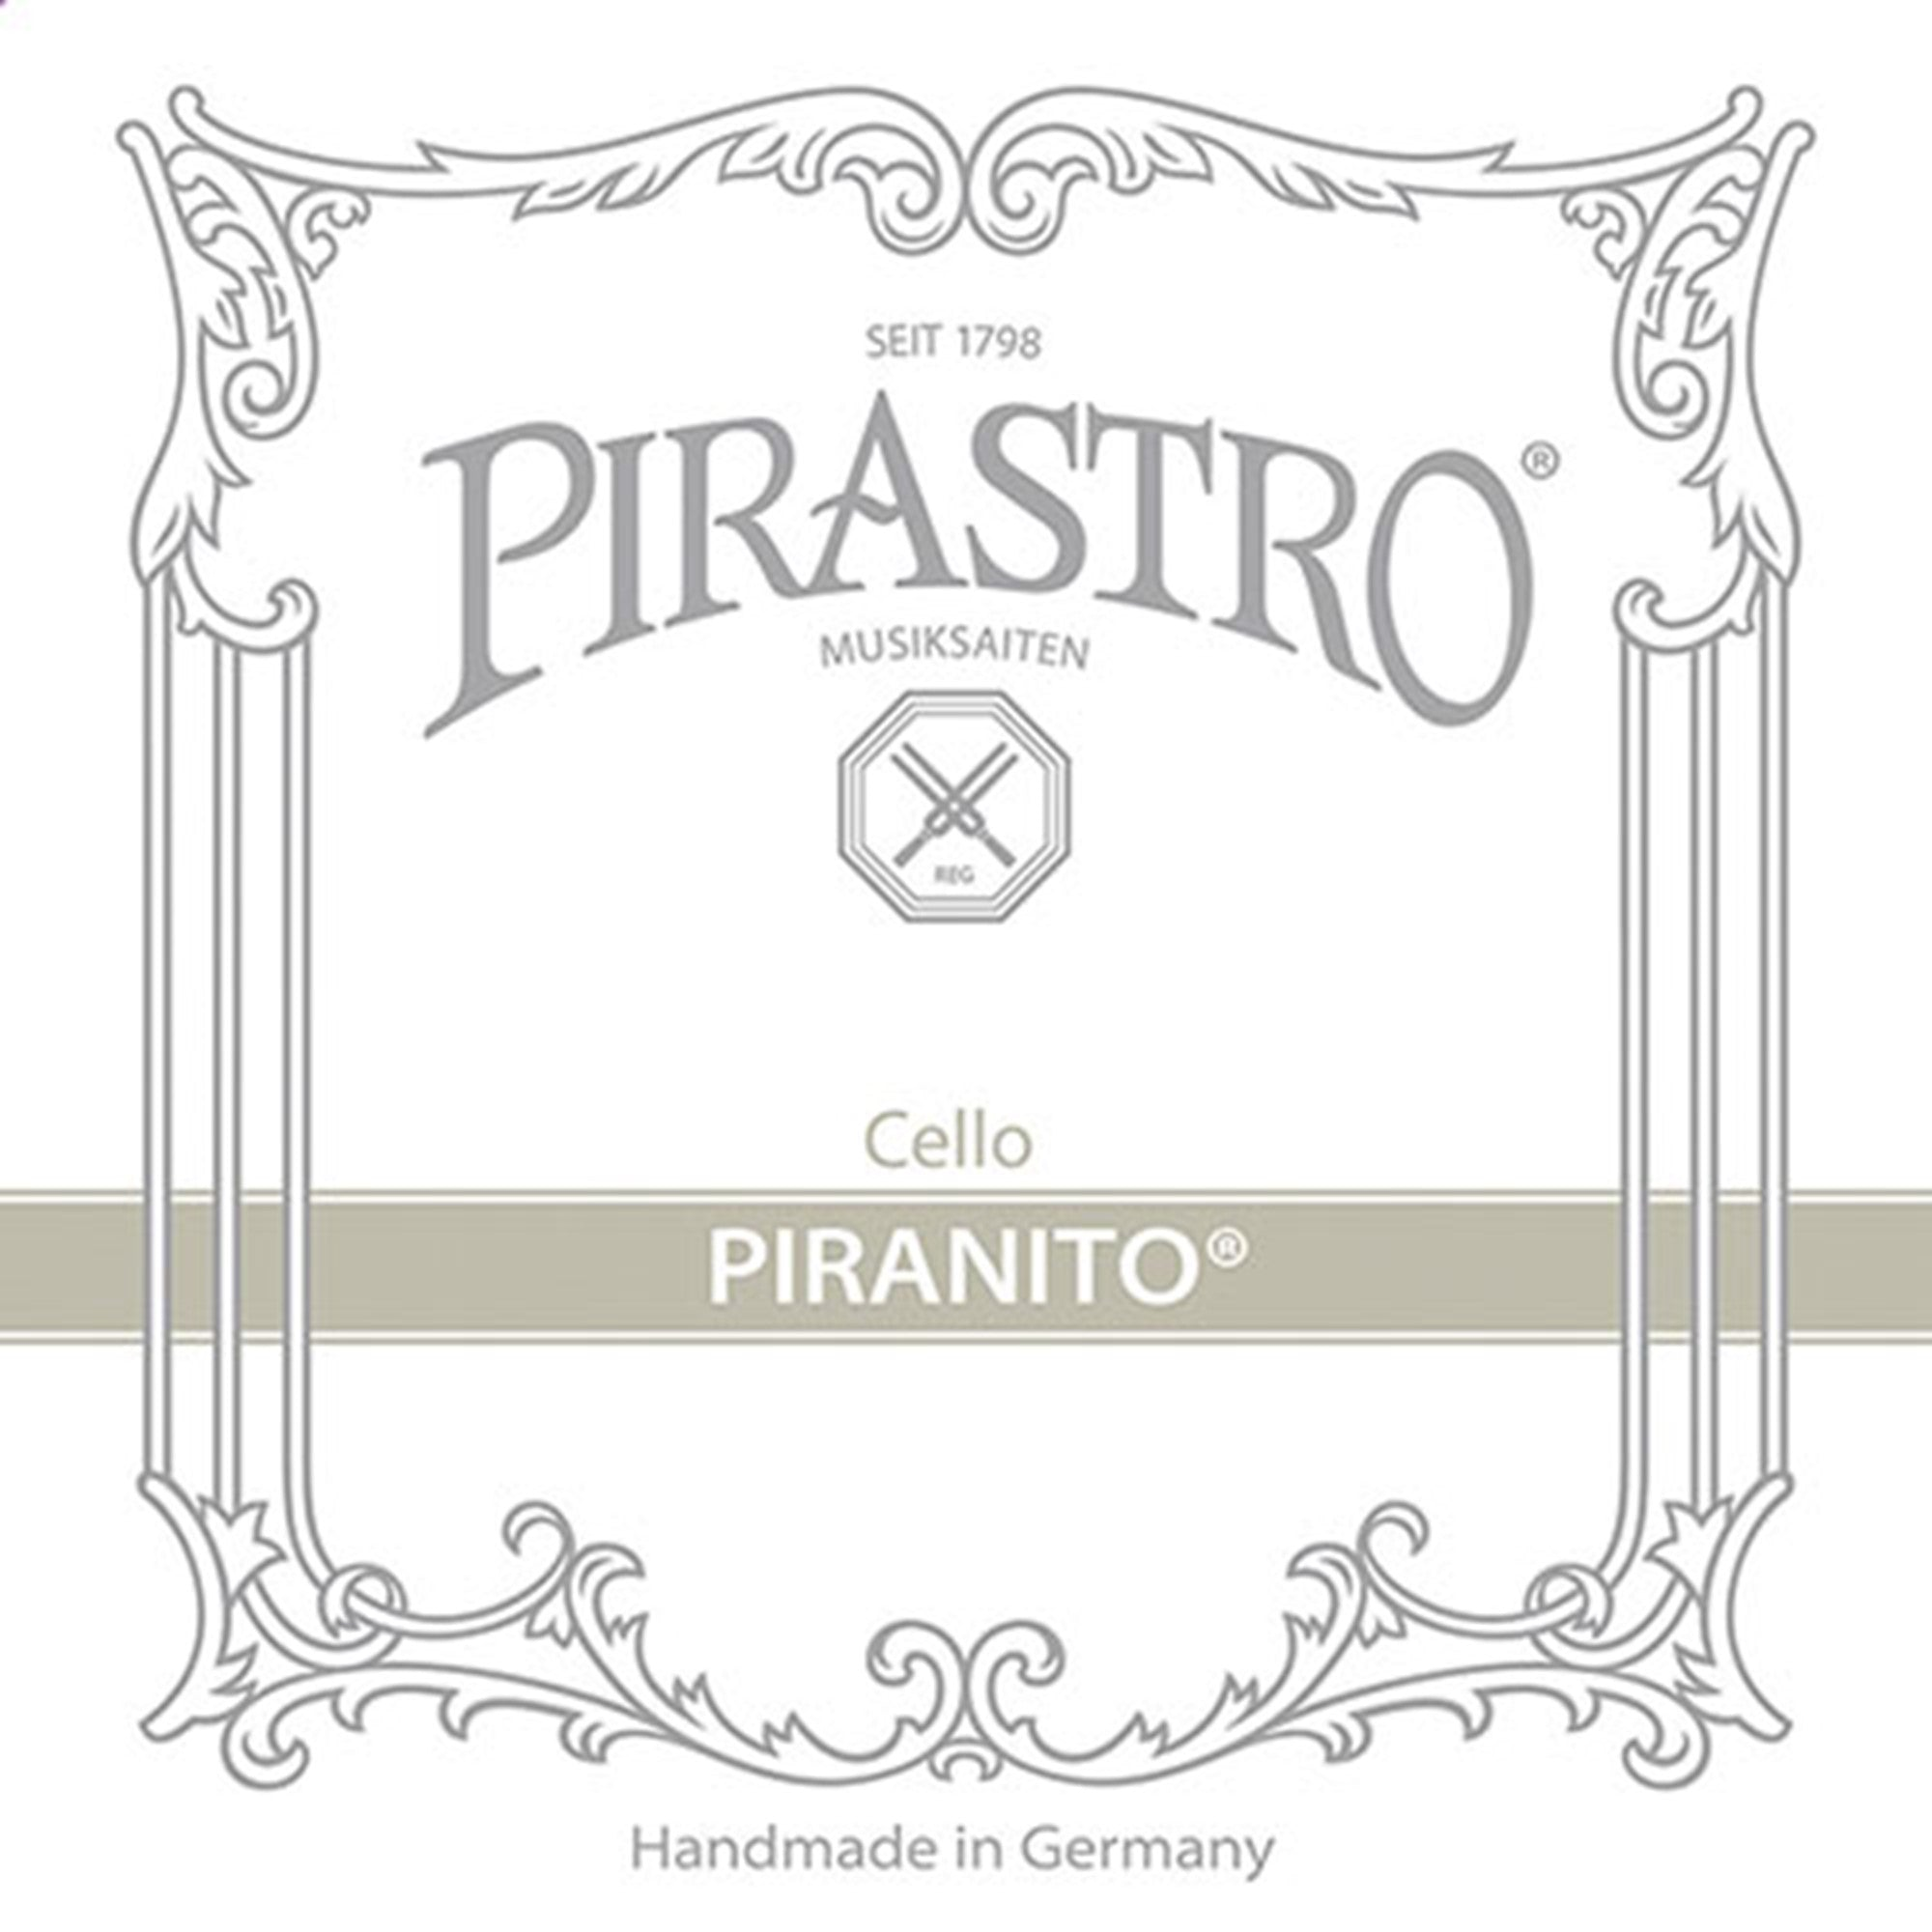 Pirastro Piranito Cello G String